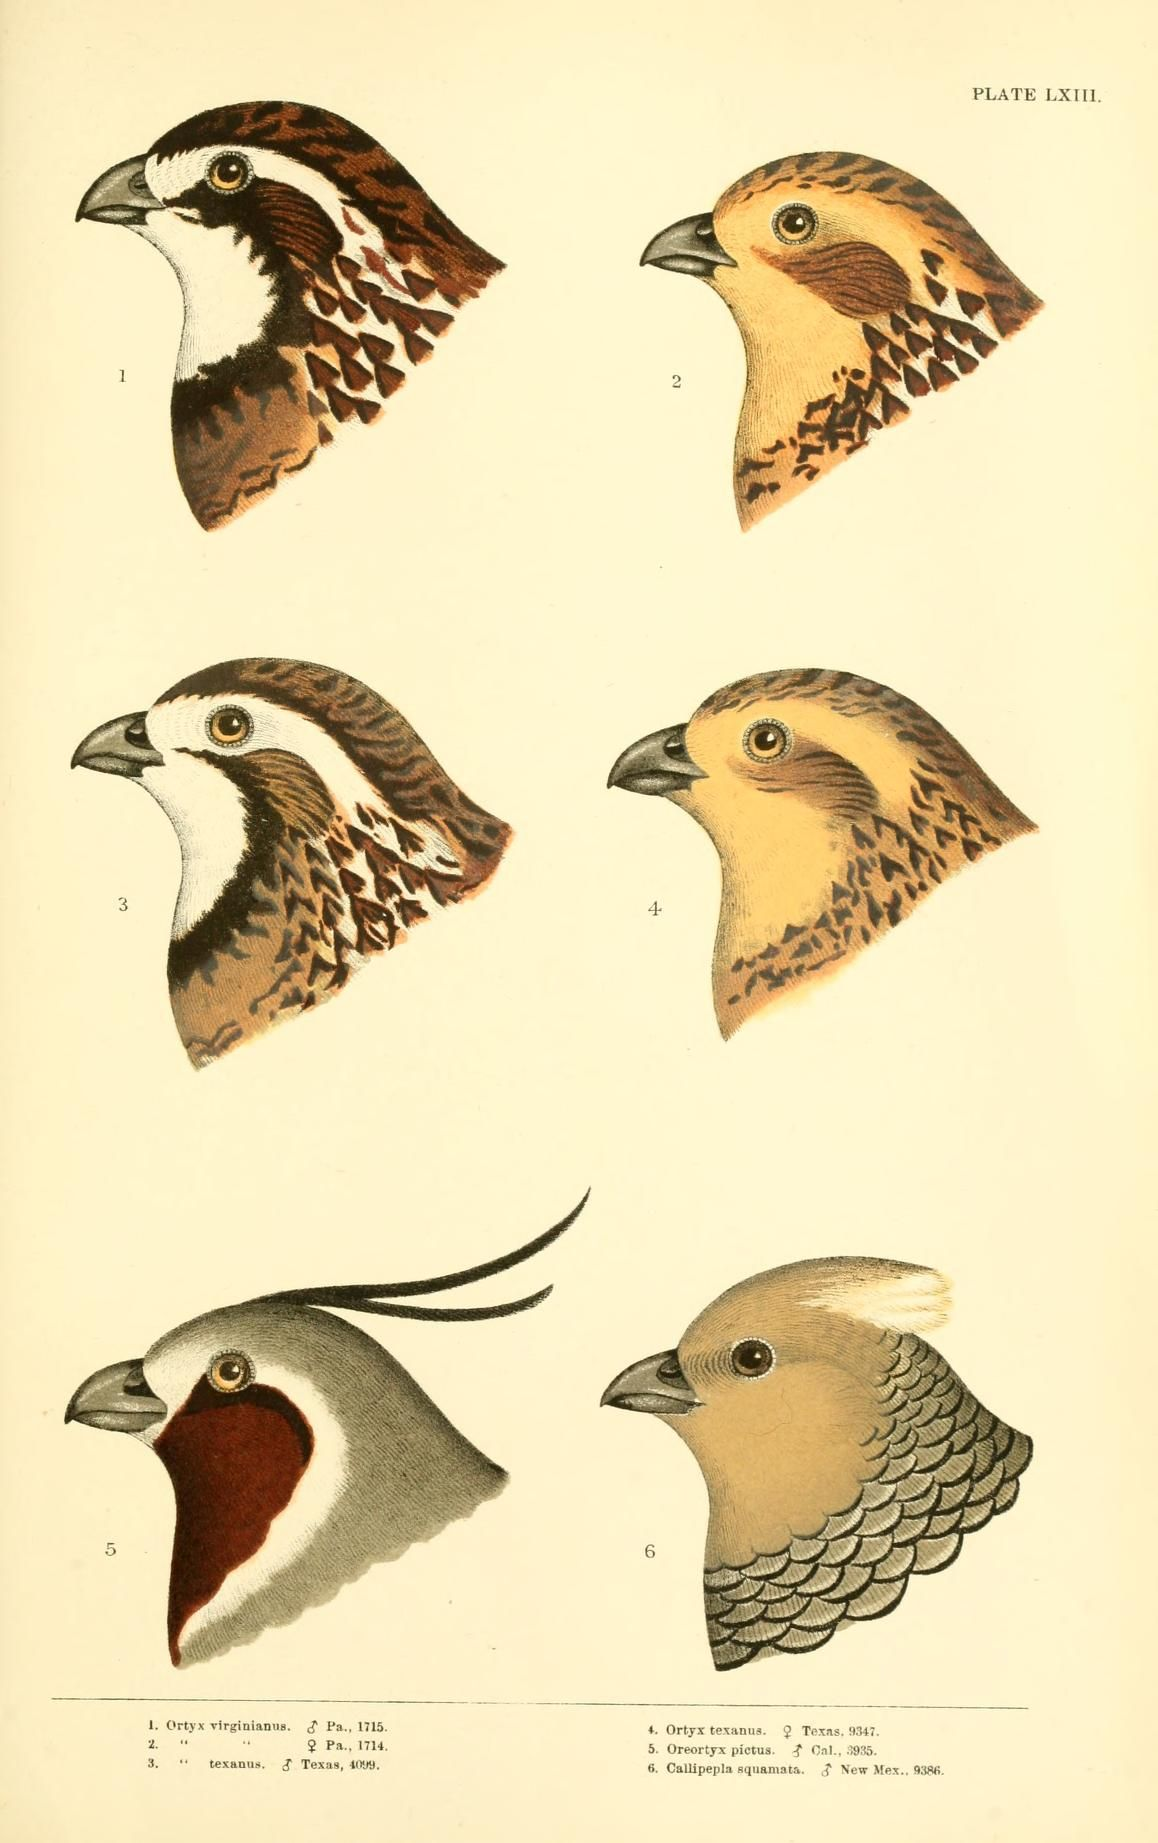 Ortyx, Callipepla and Oreortyx. A history of North American birds v.3 Boston :Little, Brown,1905. Biodiversitylibrary. Biodivlibrary. BHL. Biodiversity Heritage Library